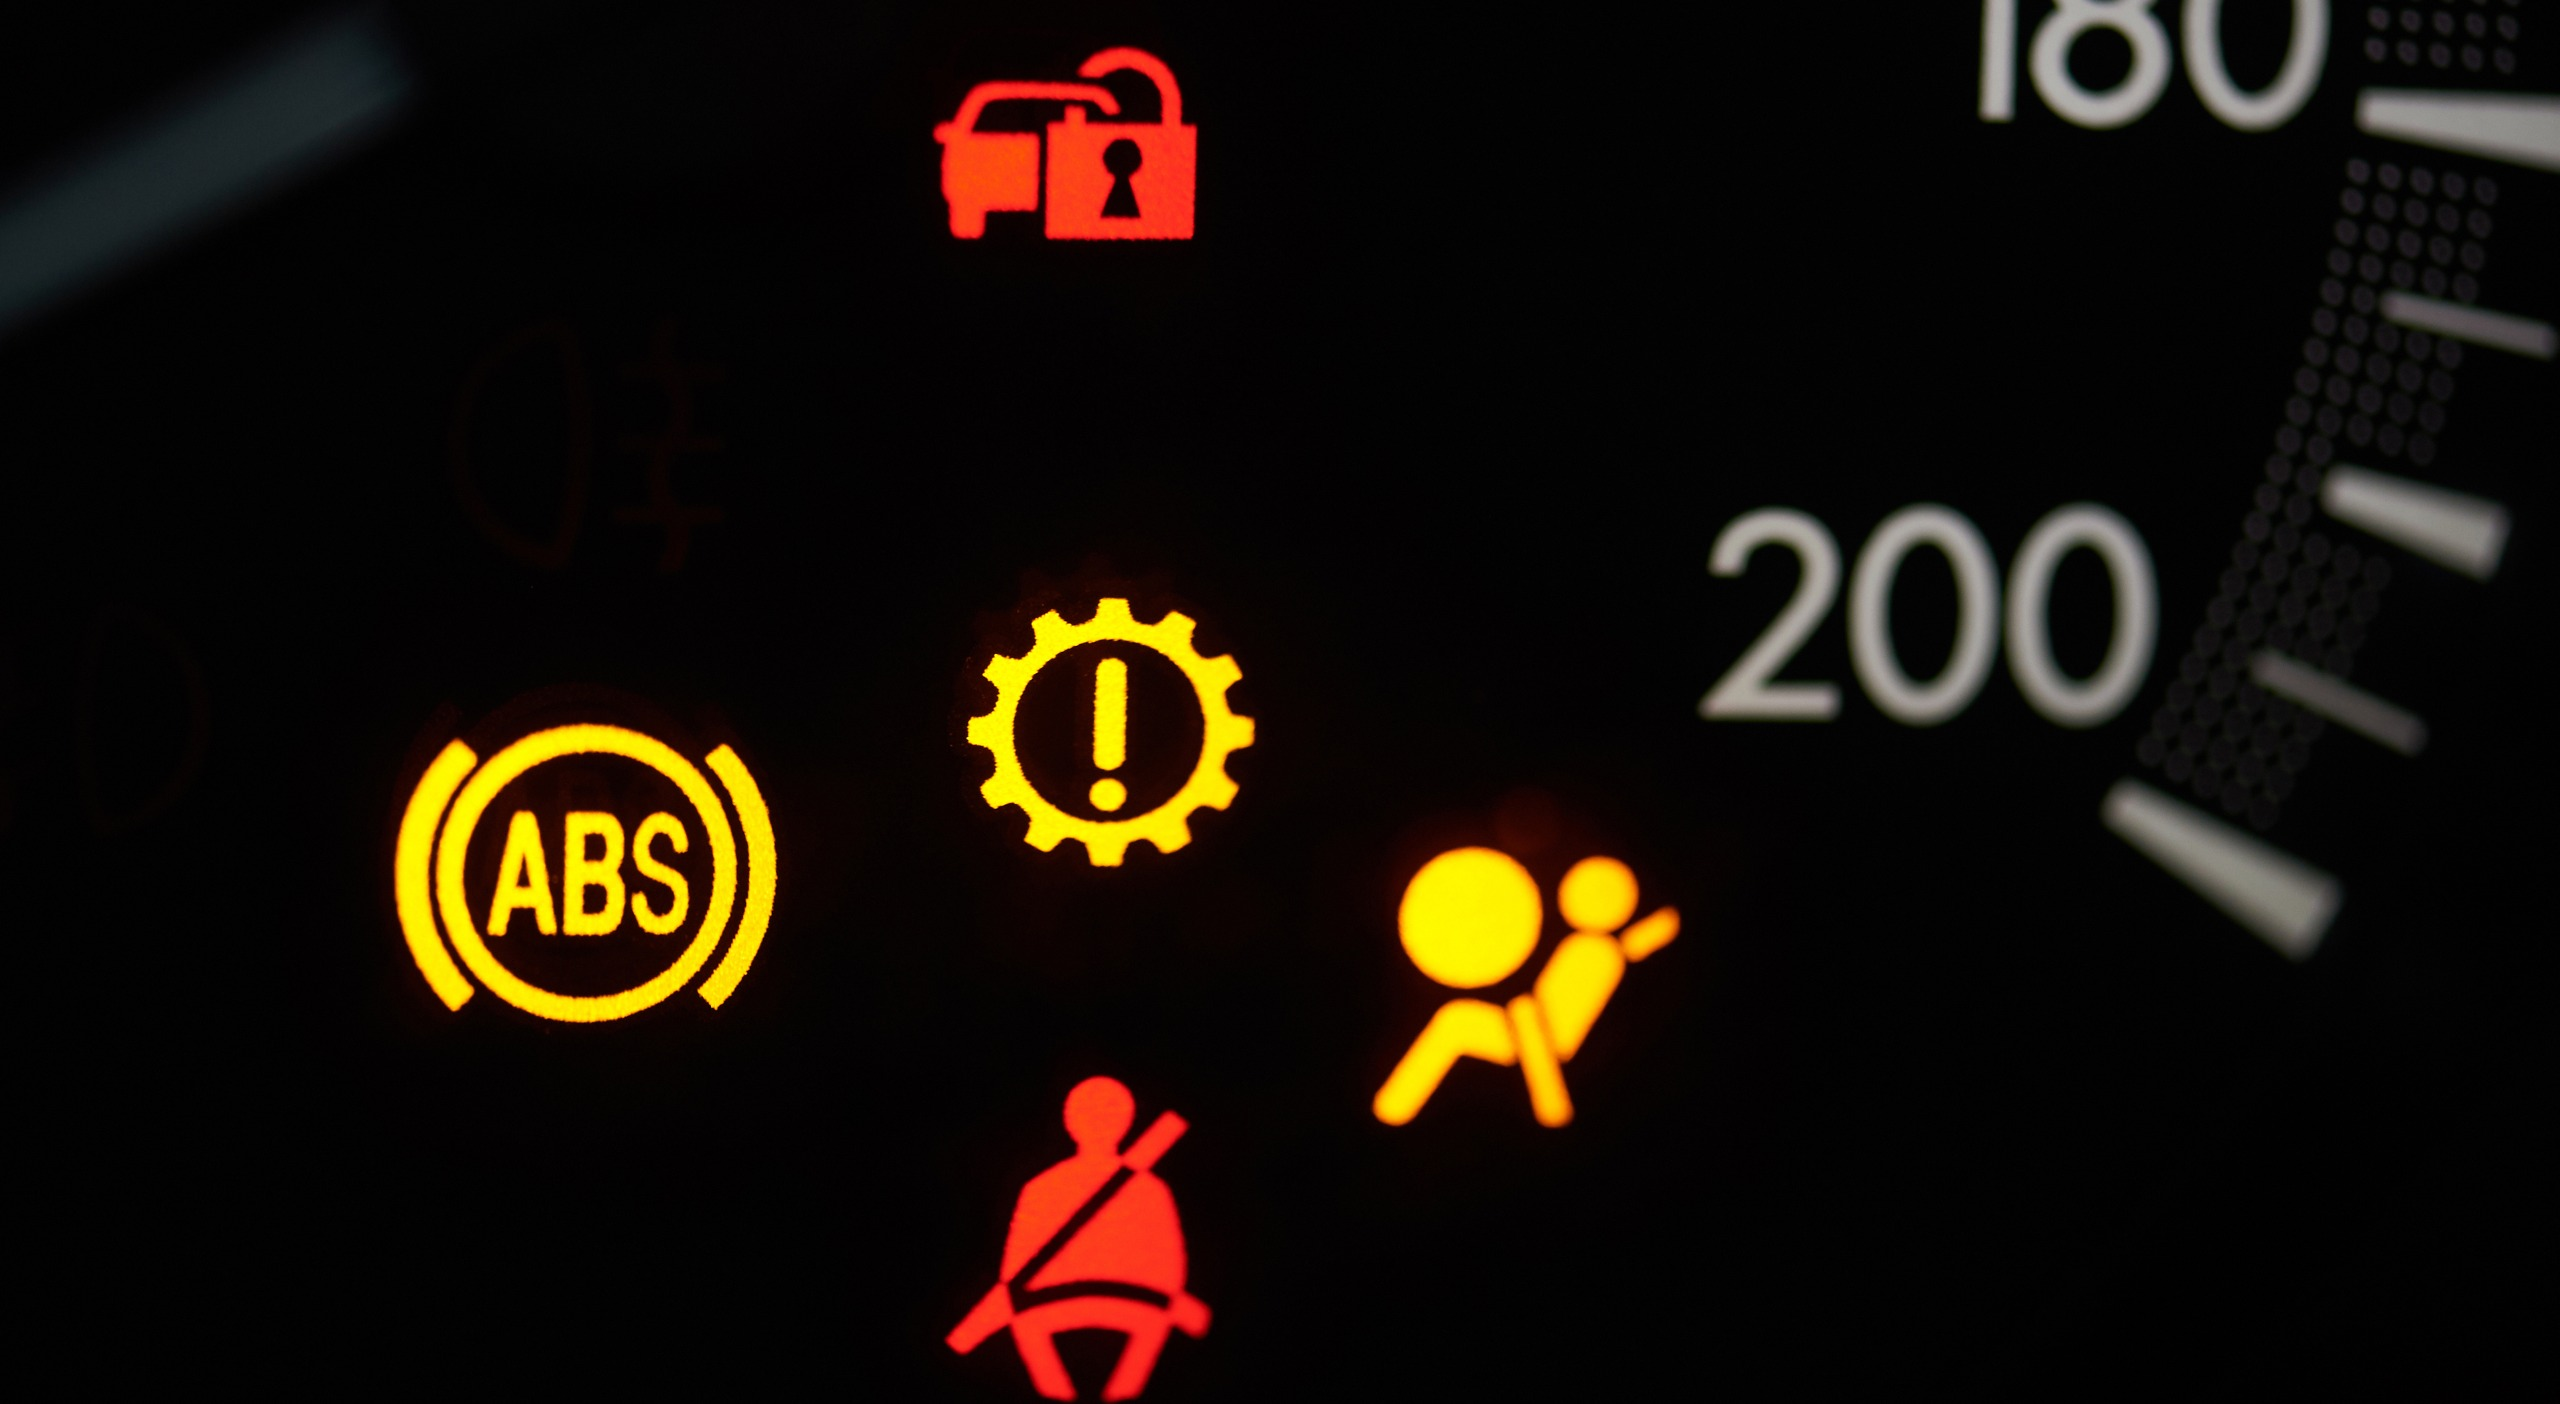 How To Fix Malfunction Indicator Lamp: A Detailed Guide